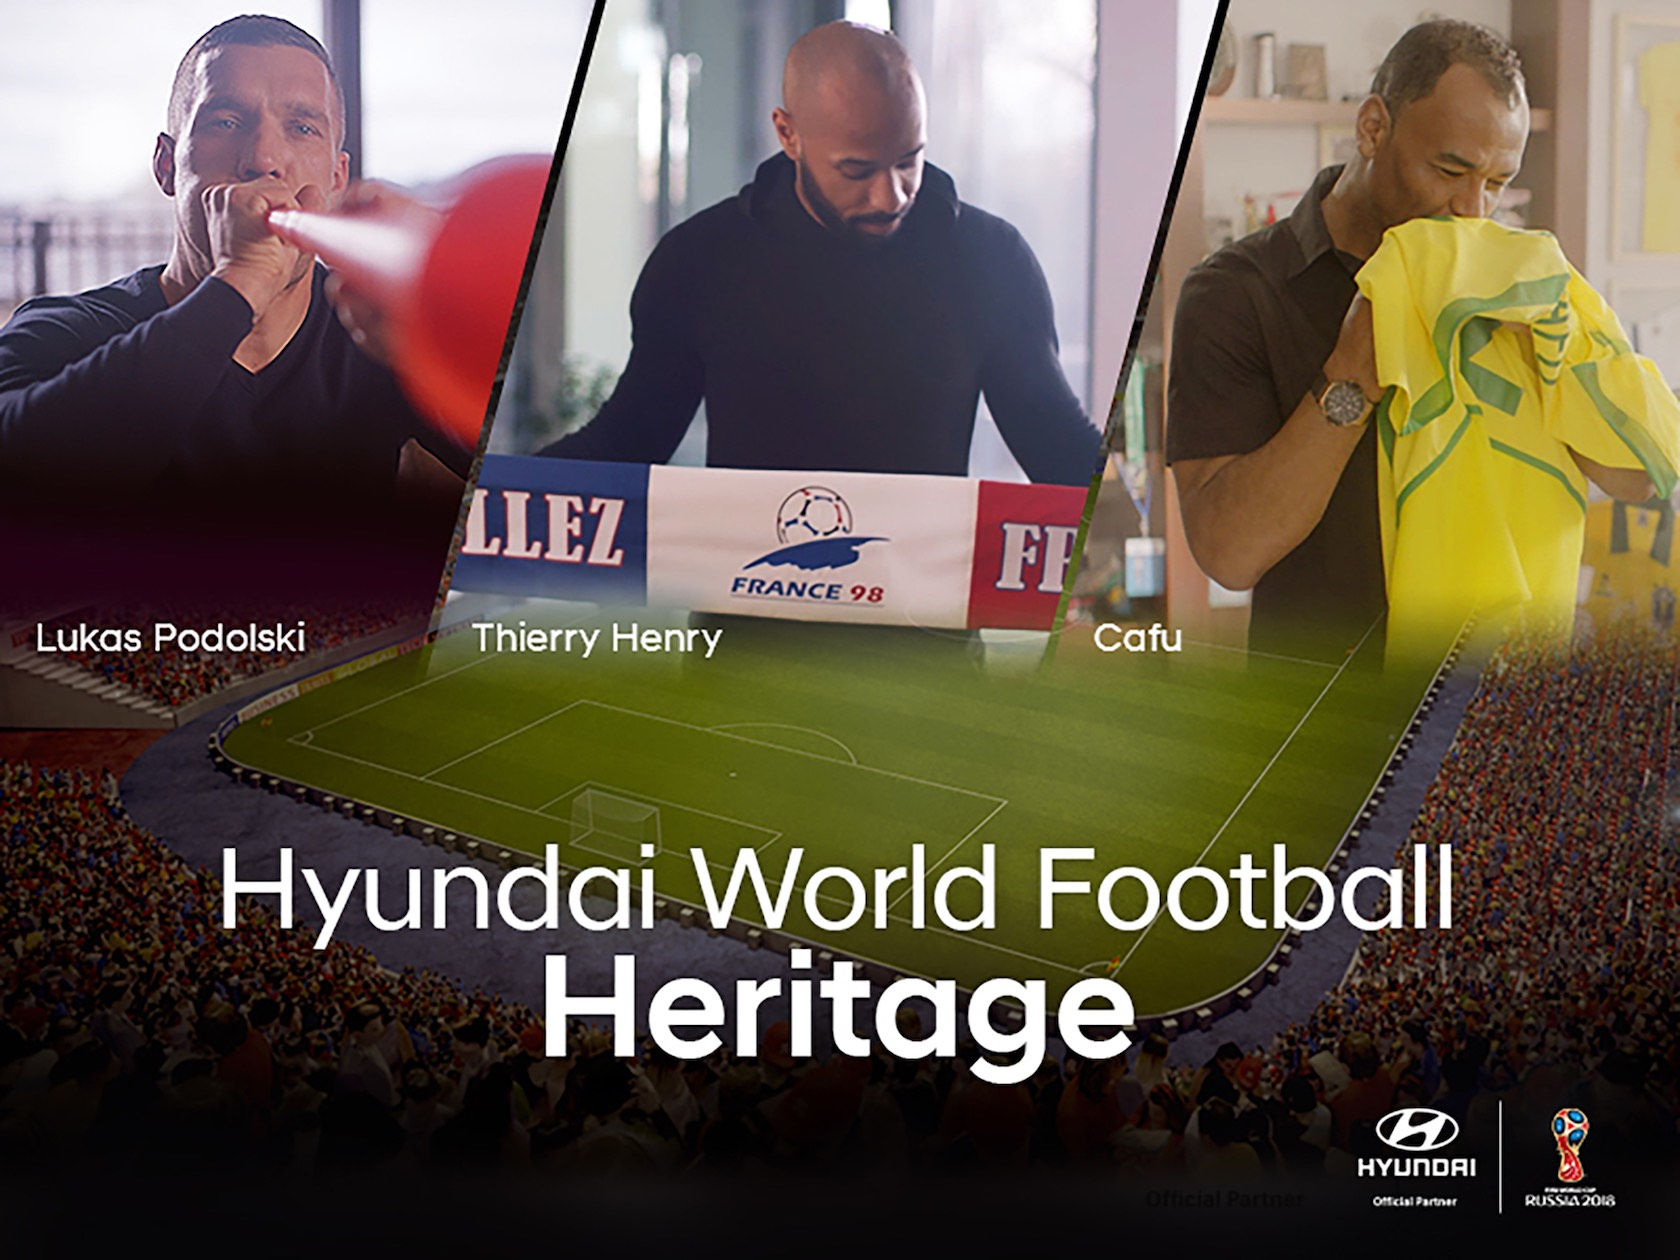 Hyundai World Football Heritage